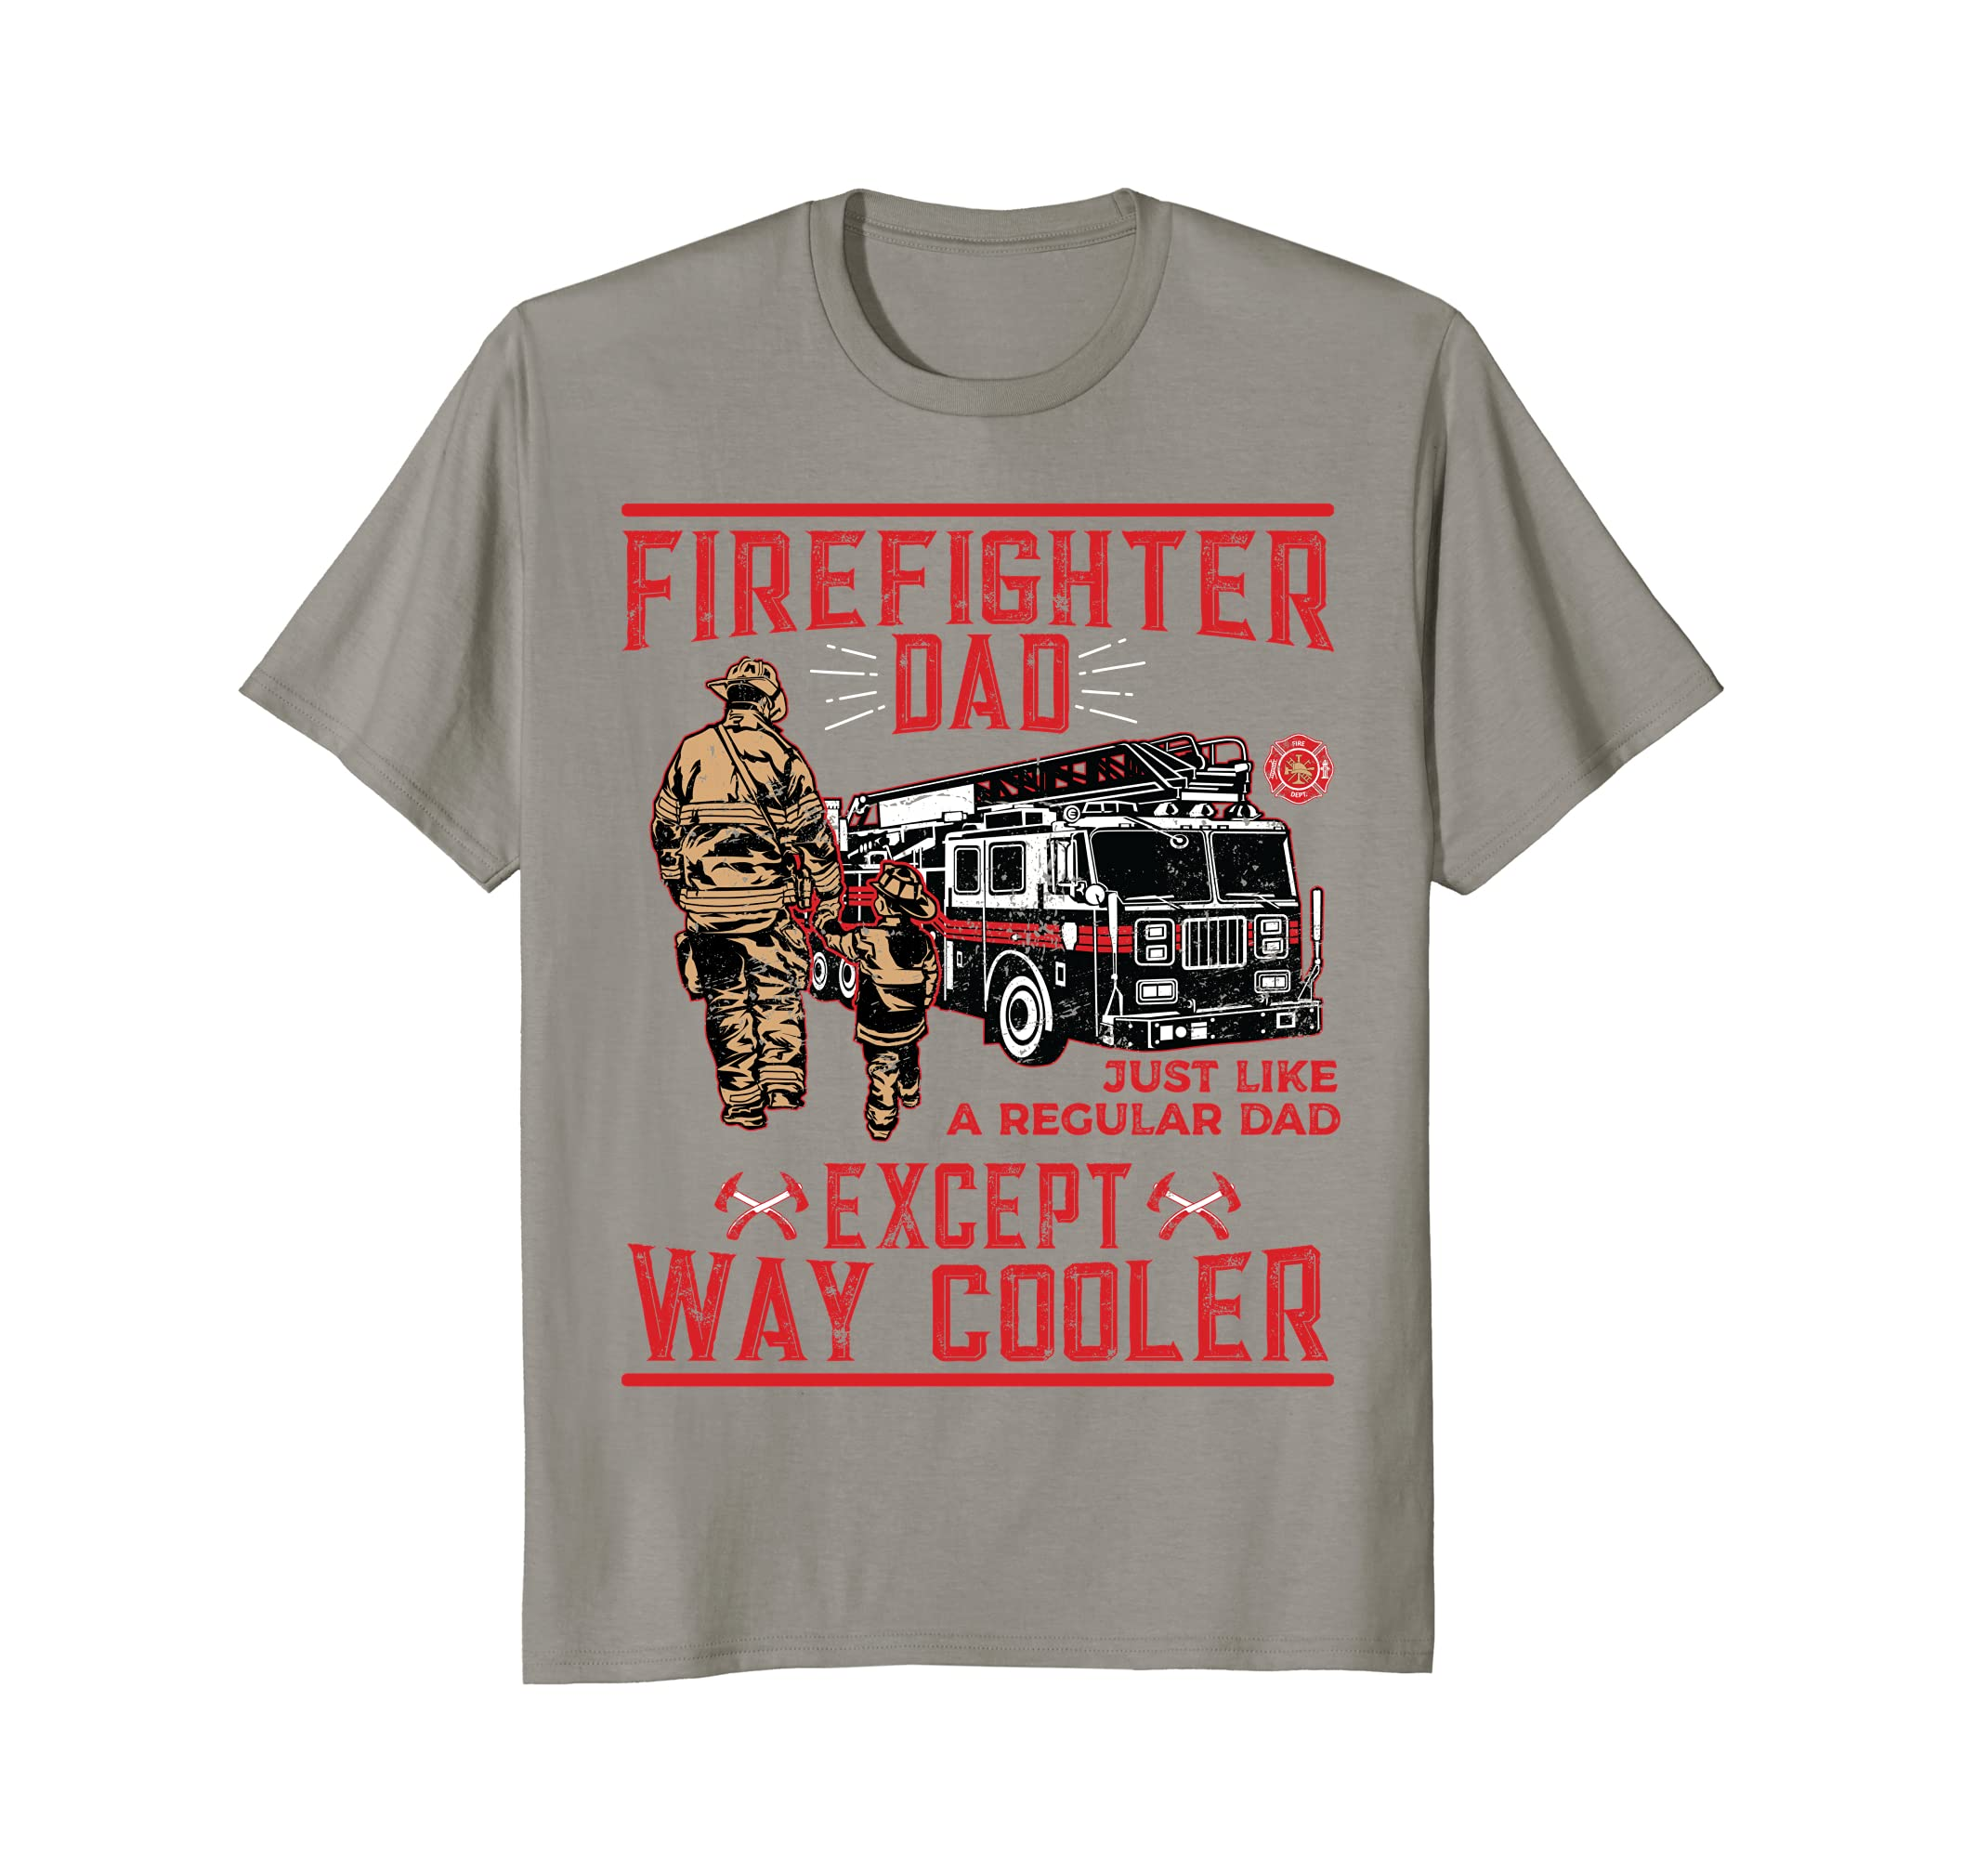 27a4bf237 Amazon.com  Mens Firefighter Dad T-Shirt Gift Firefighter Dads Are Way  Cooler  Clothing